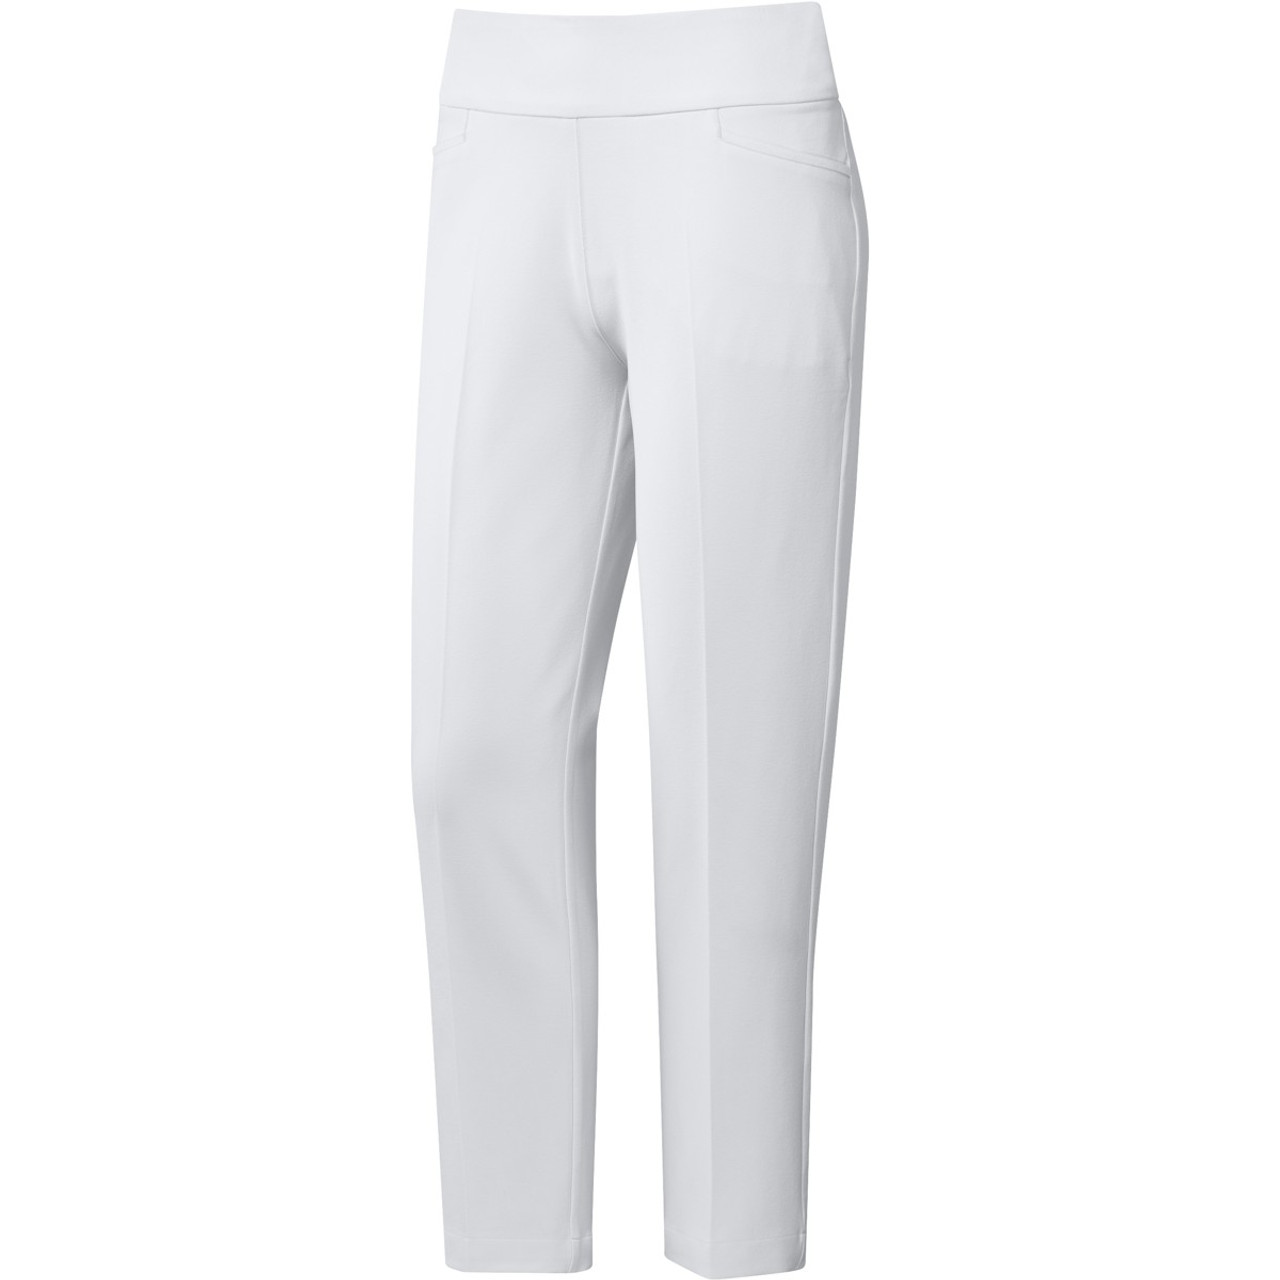 Adidas Womens Ultimate 365 Adistar Cropped Pants - White